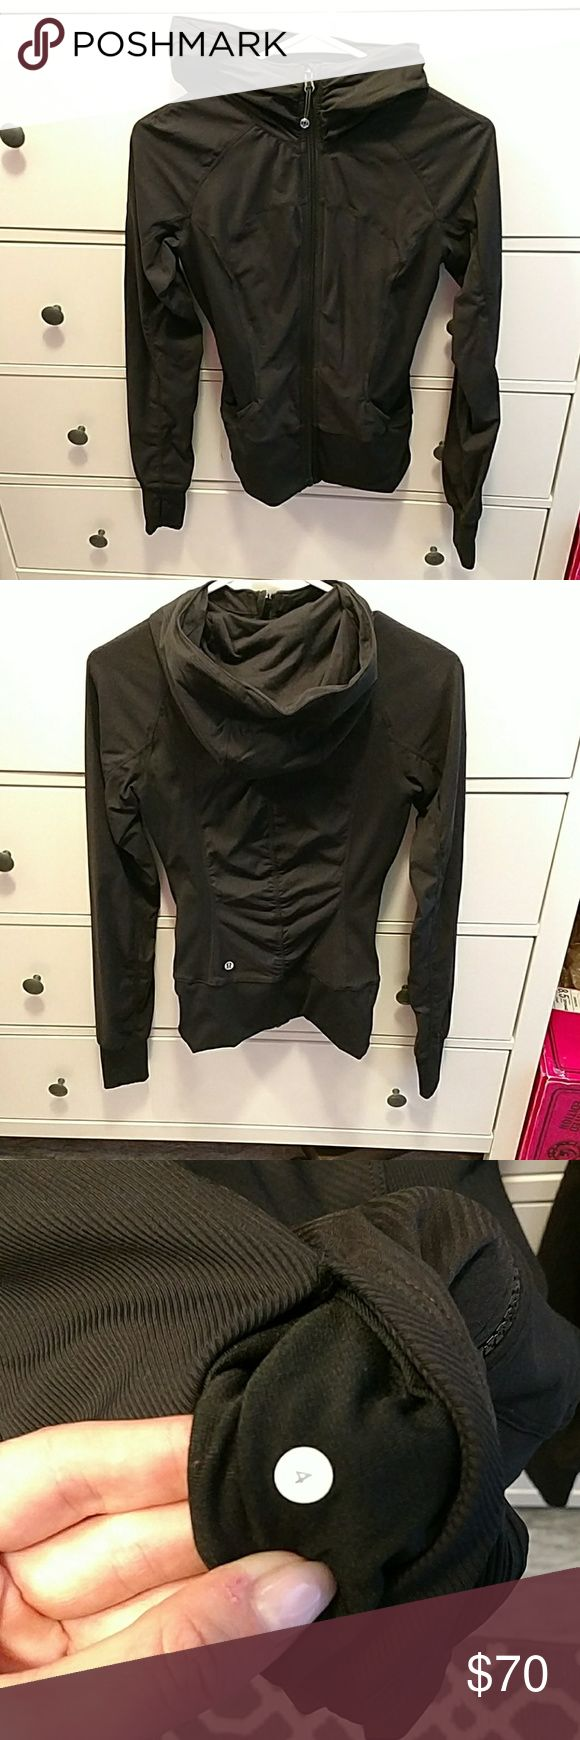 Lululemon in flux jacket Black, sz 4, been worn 1 time, in perfect condition. lululemon athletica Jackets & Coats